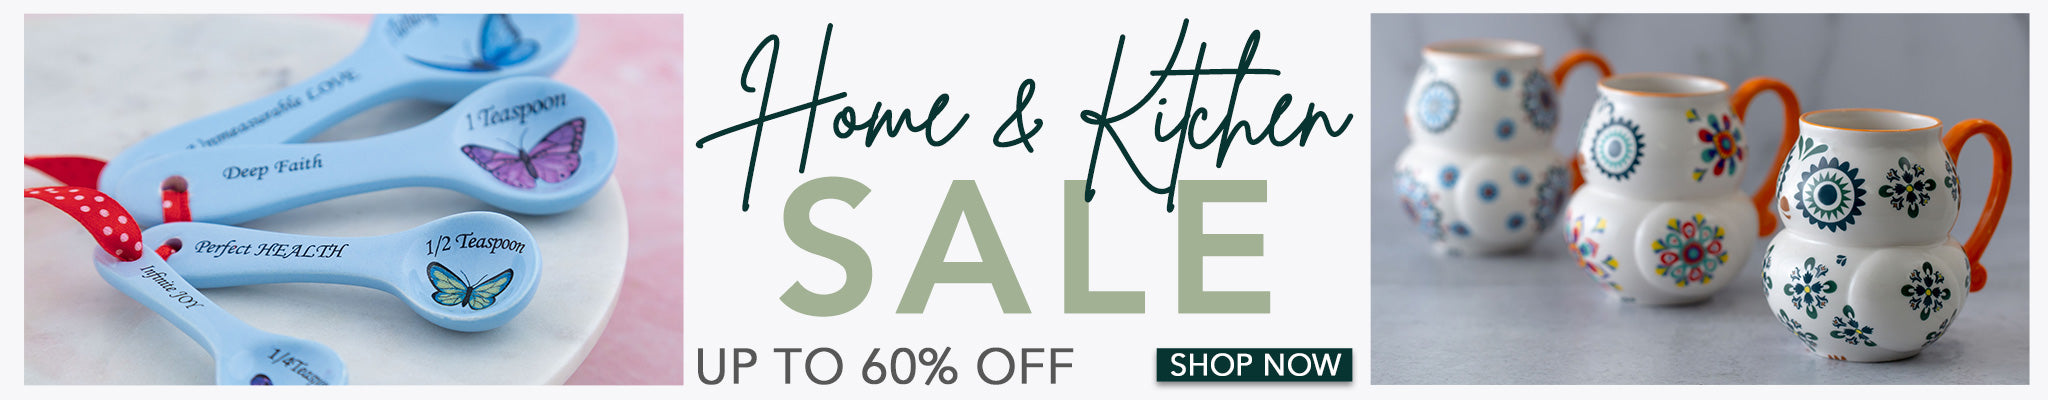 Home & Kitchen Sale